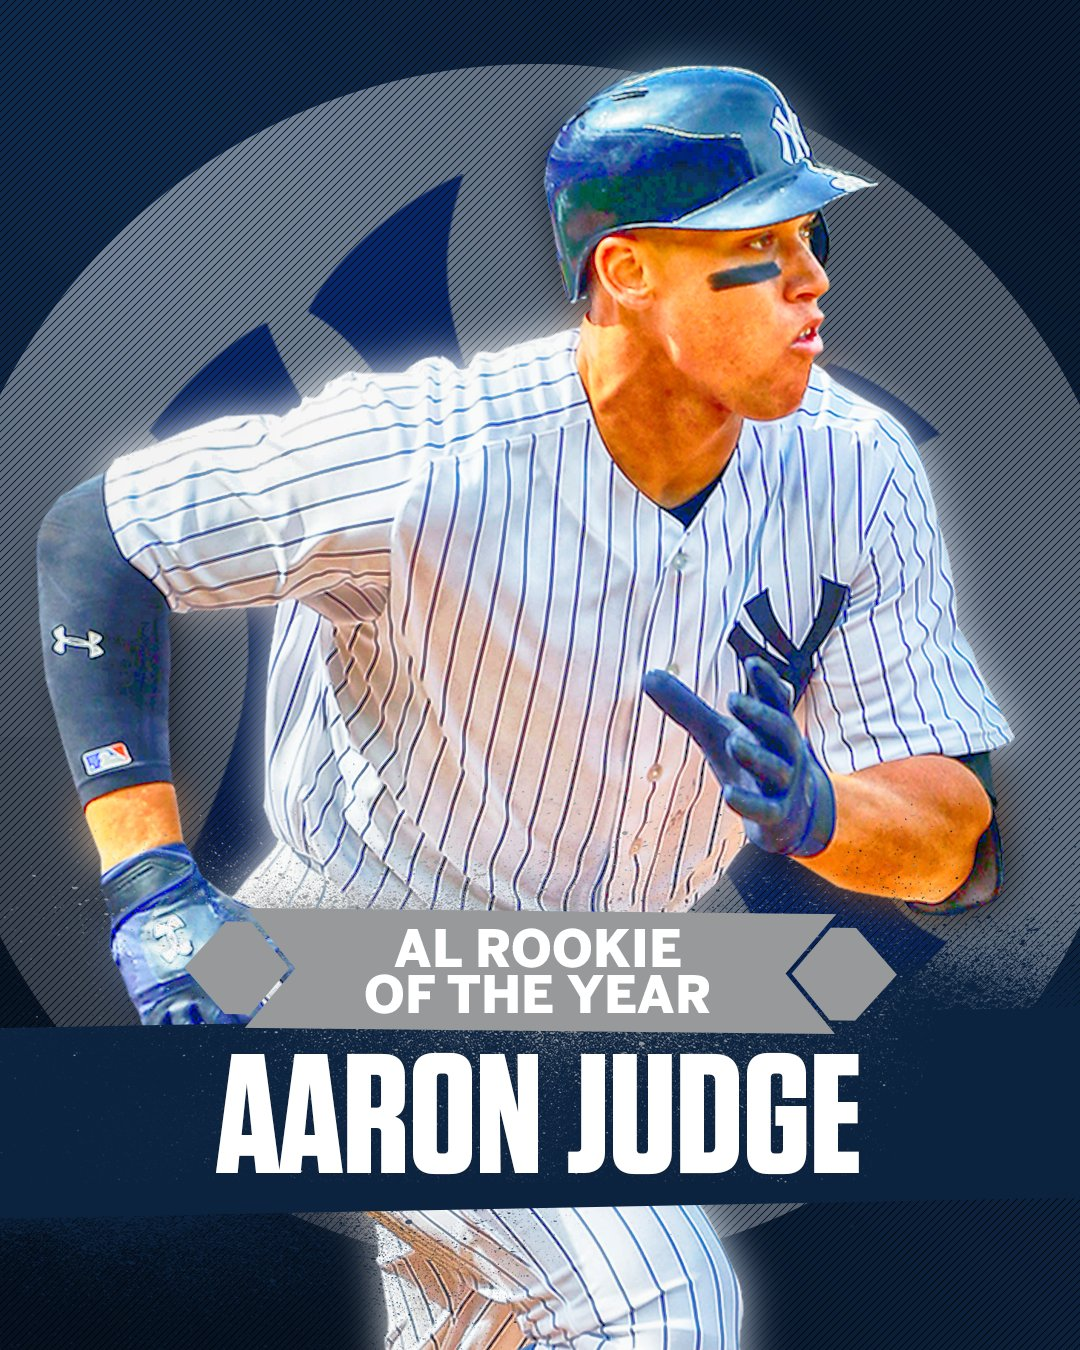 Aaron Judge has been unanimously named the 2017 AL Rookie of the Year. https://t.co/E2XFeIazMr